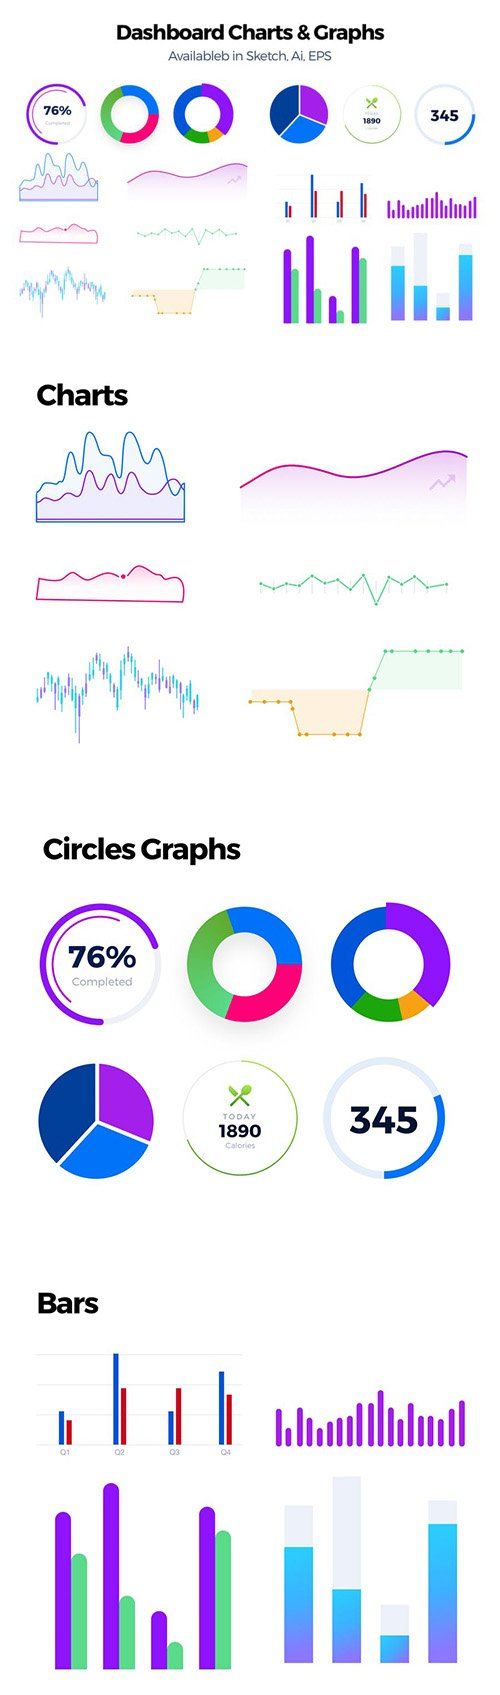 Dashboards Charts and Graphs